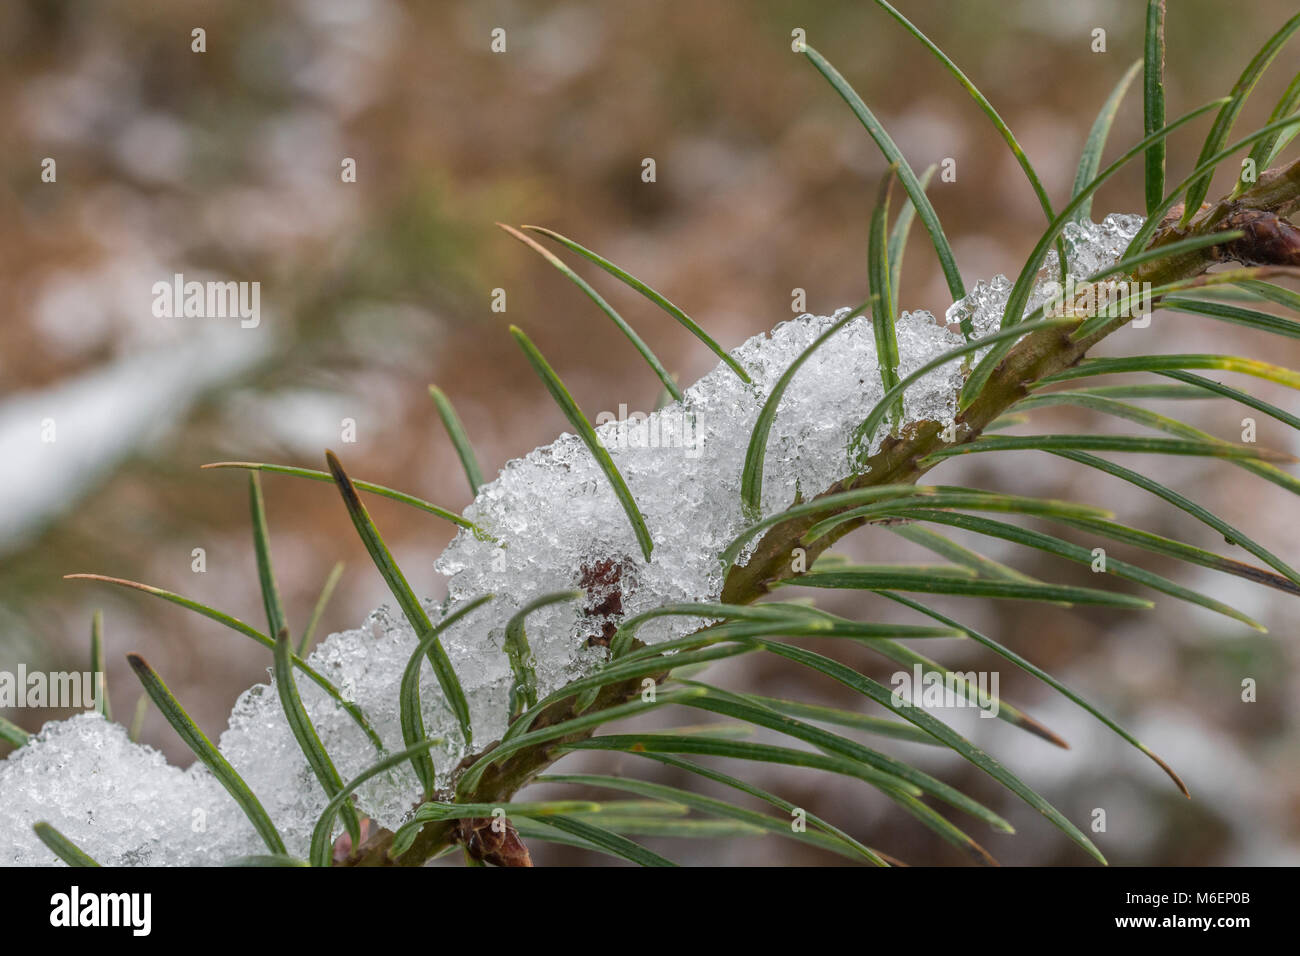 Close-up of pine or fir needles covered with snow. - Stock Image